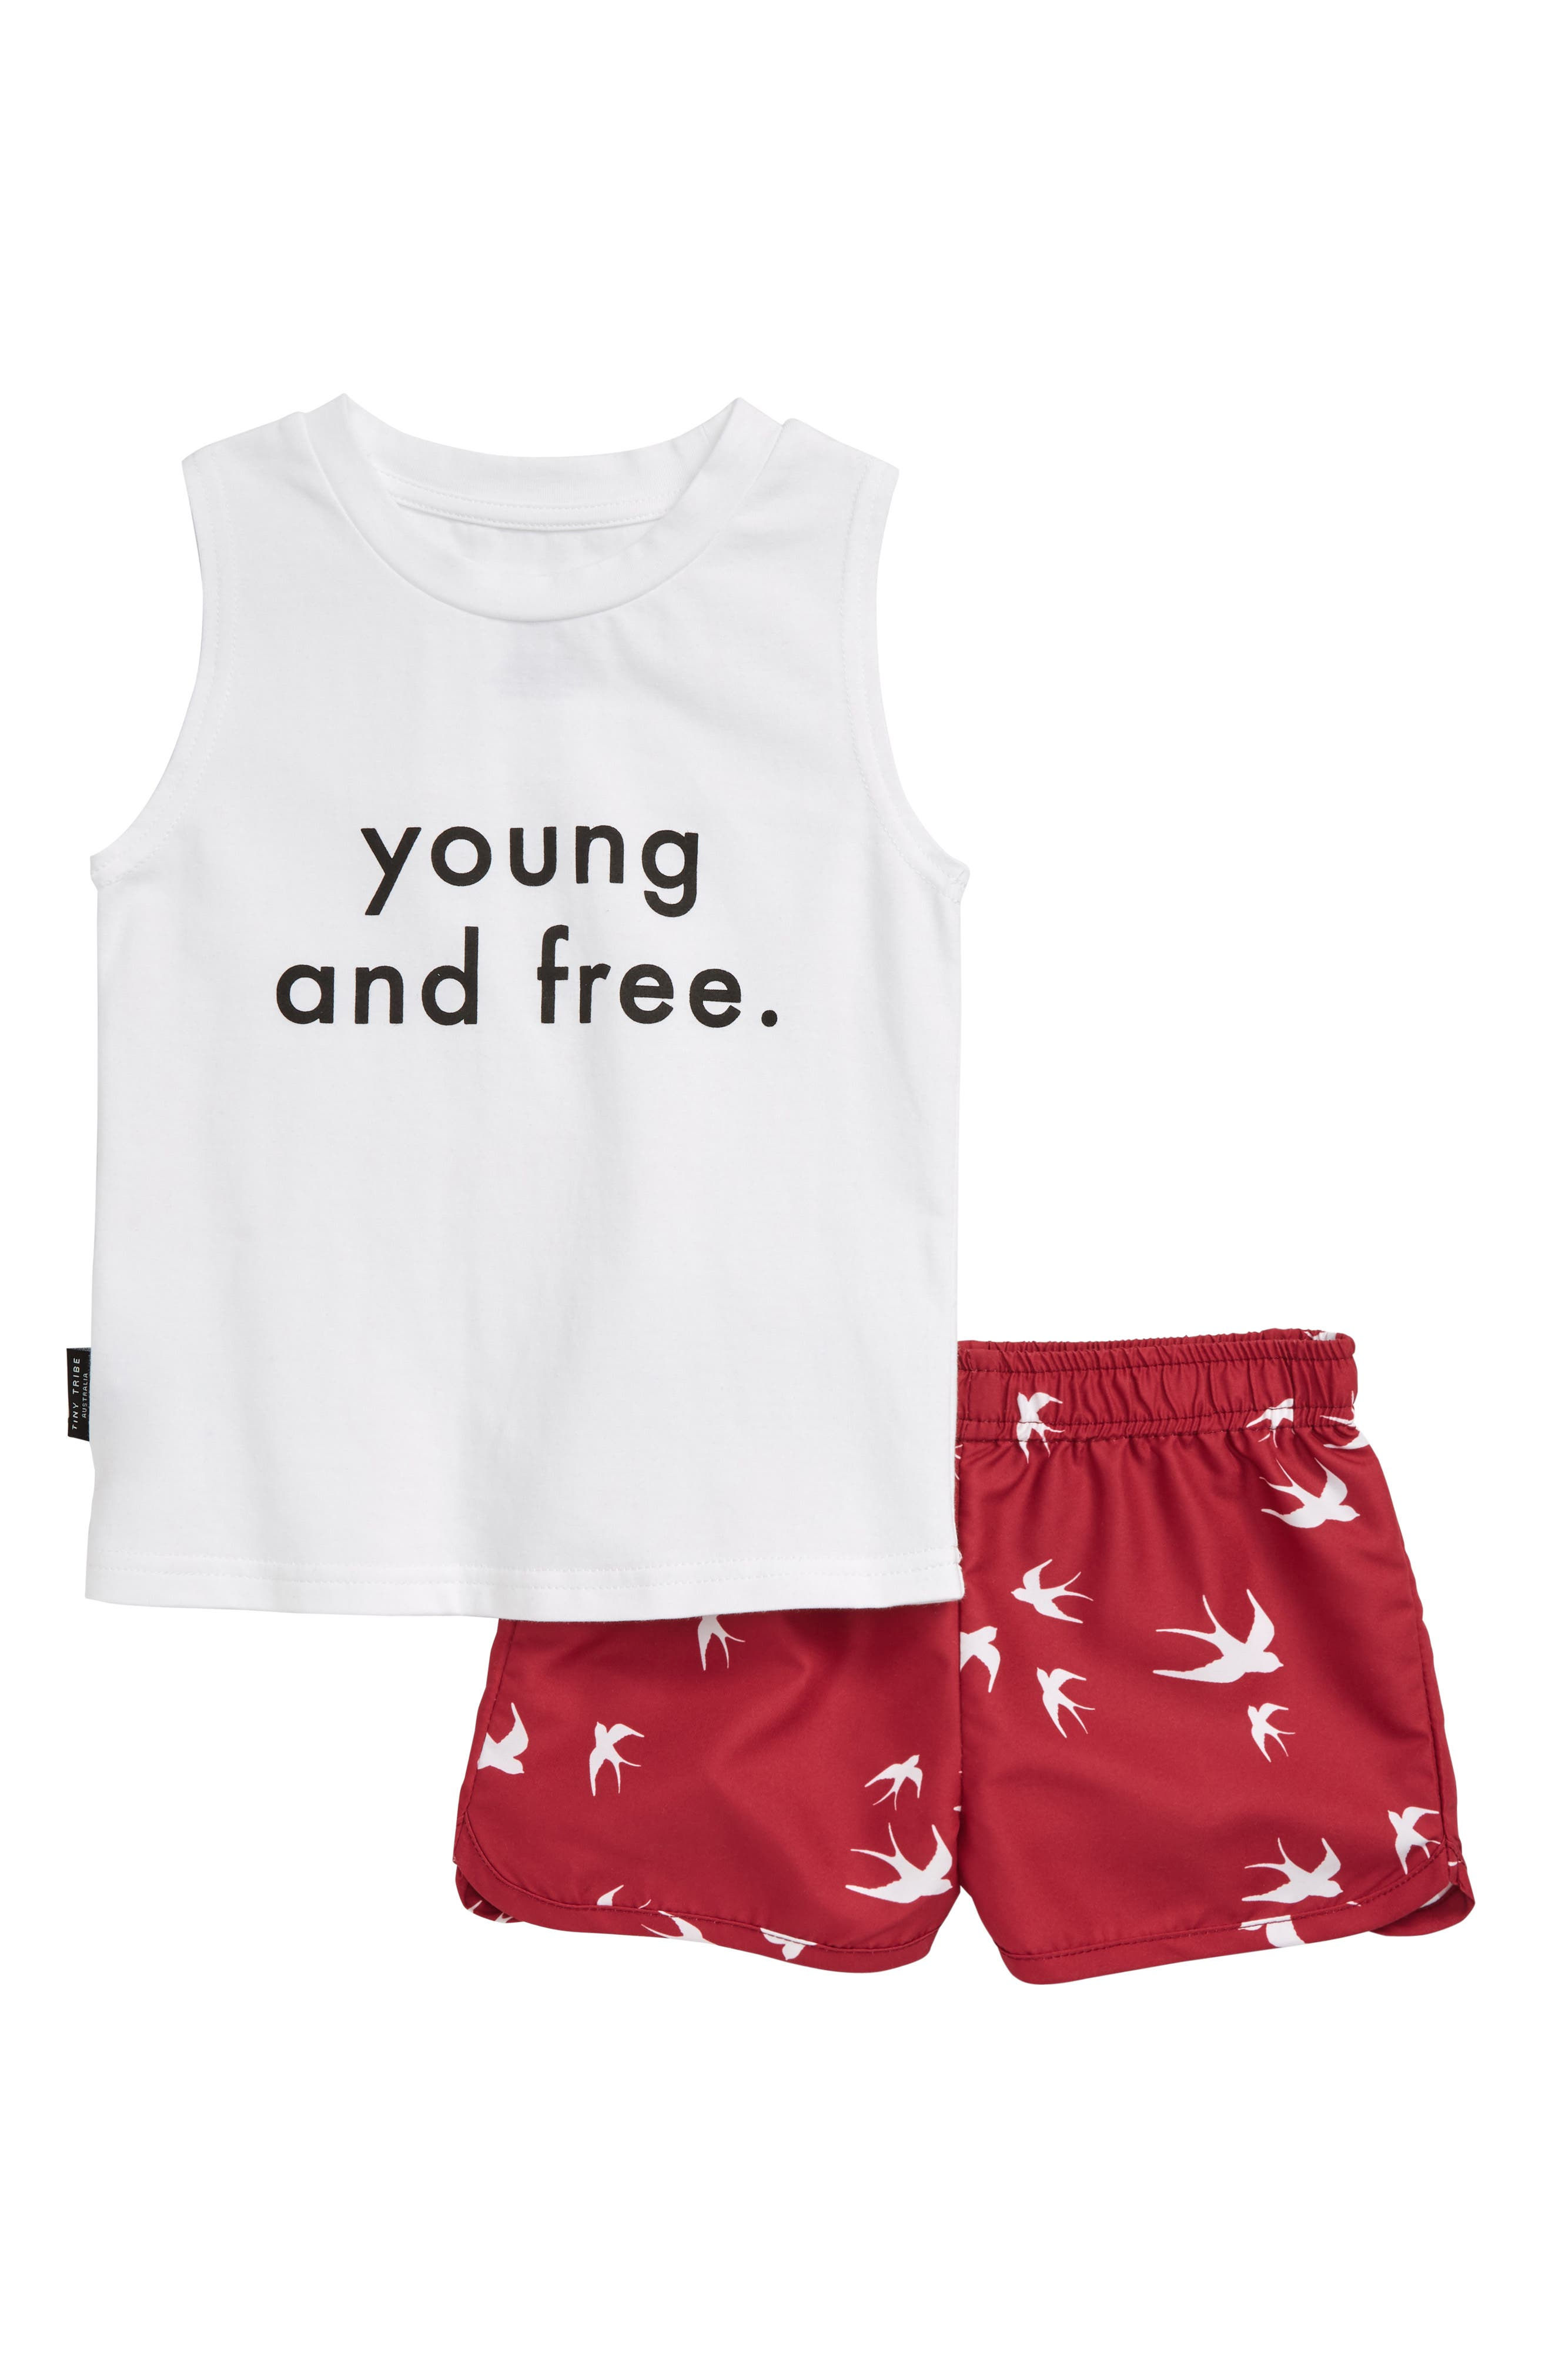 Toddler Girls Tiny Tribe Young  Free Tee  Print Shorts Set